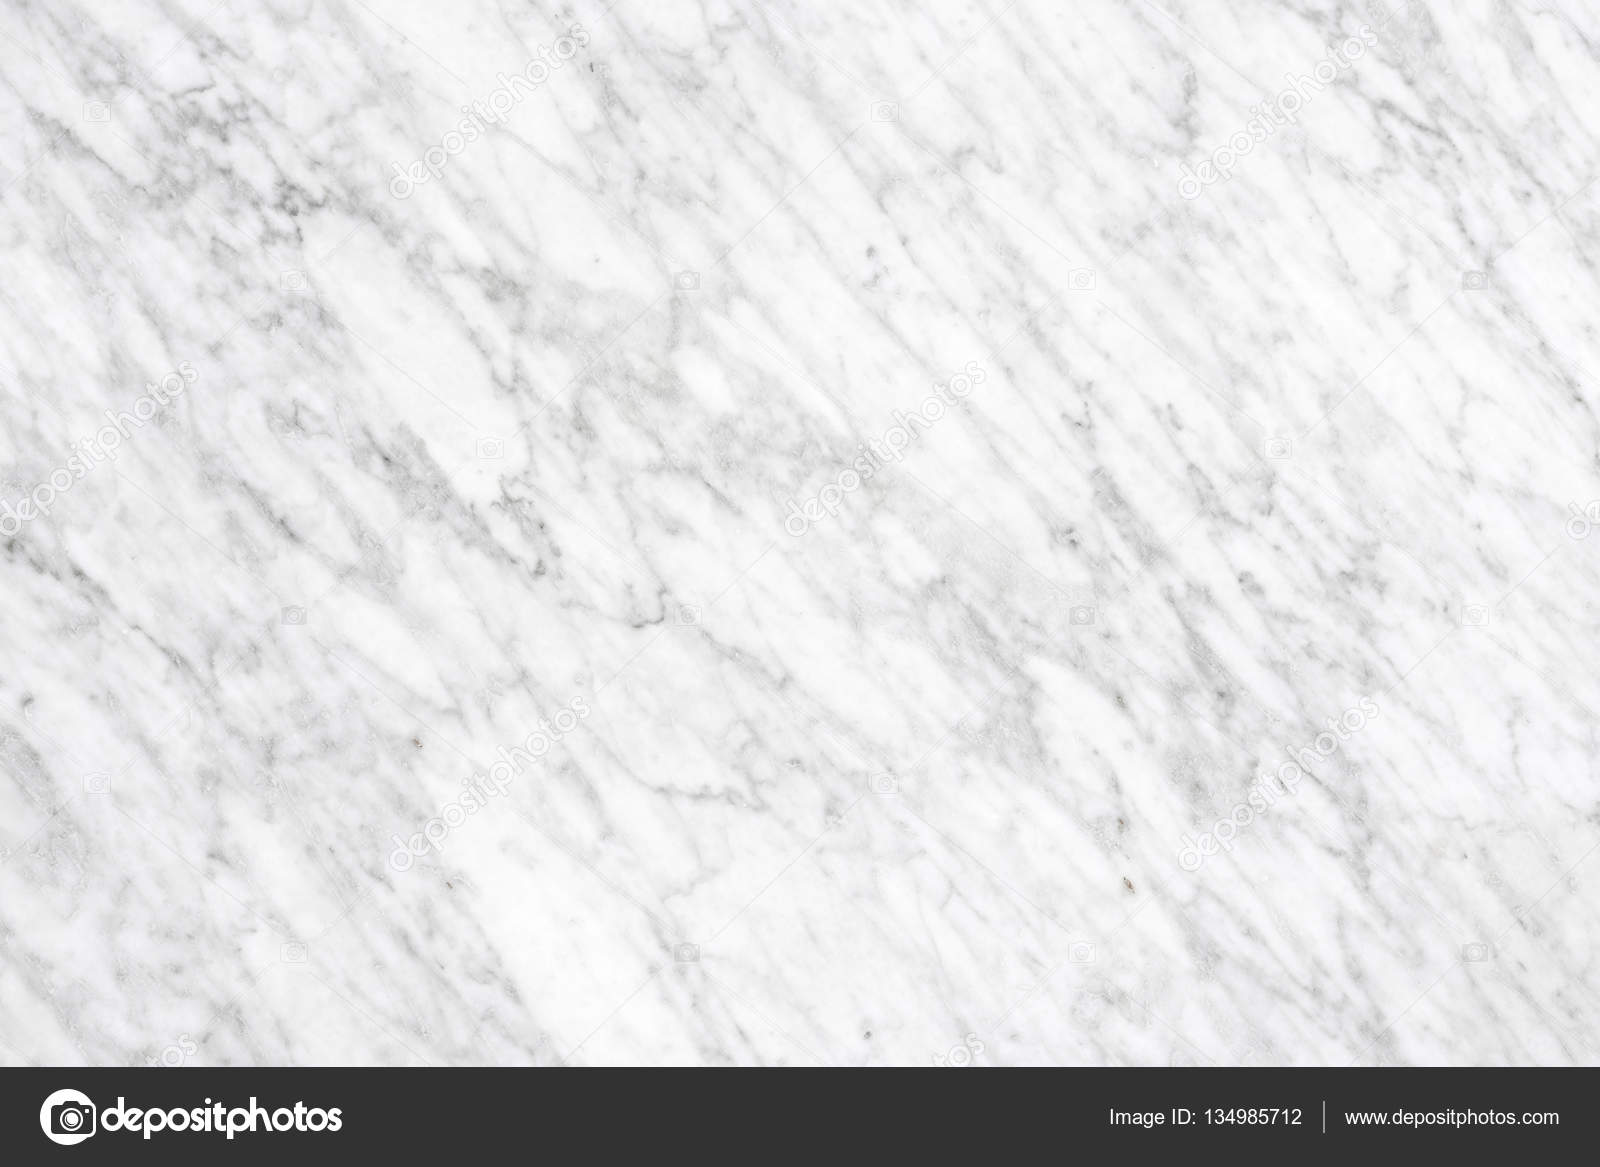 Arbeitsplatte Küche Carrara Marmor White Carrara Marble Natural Light Surface For Bathroom Or